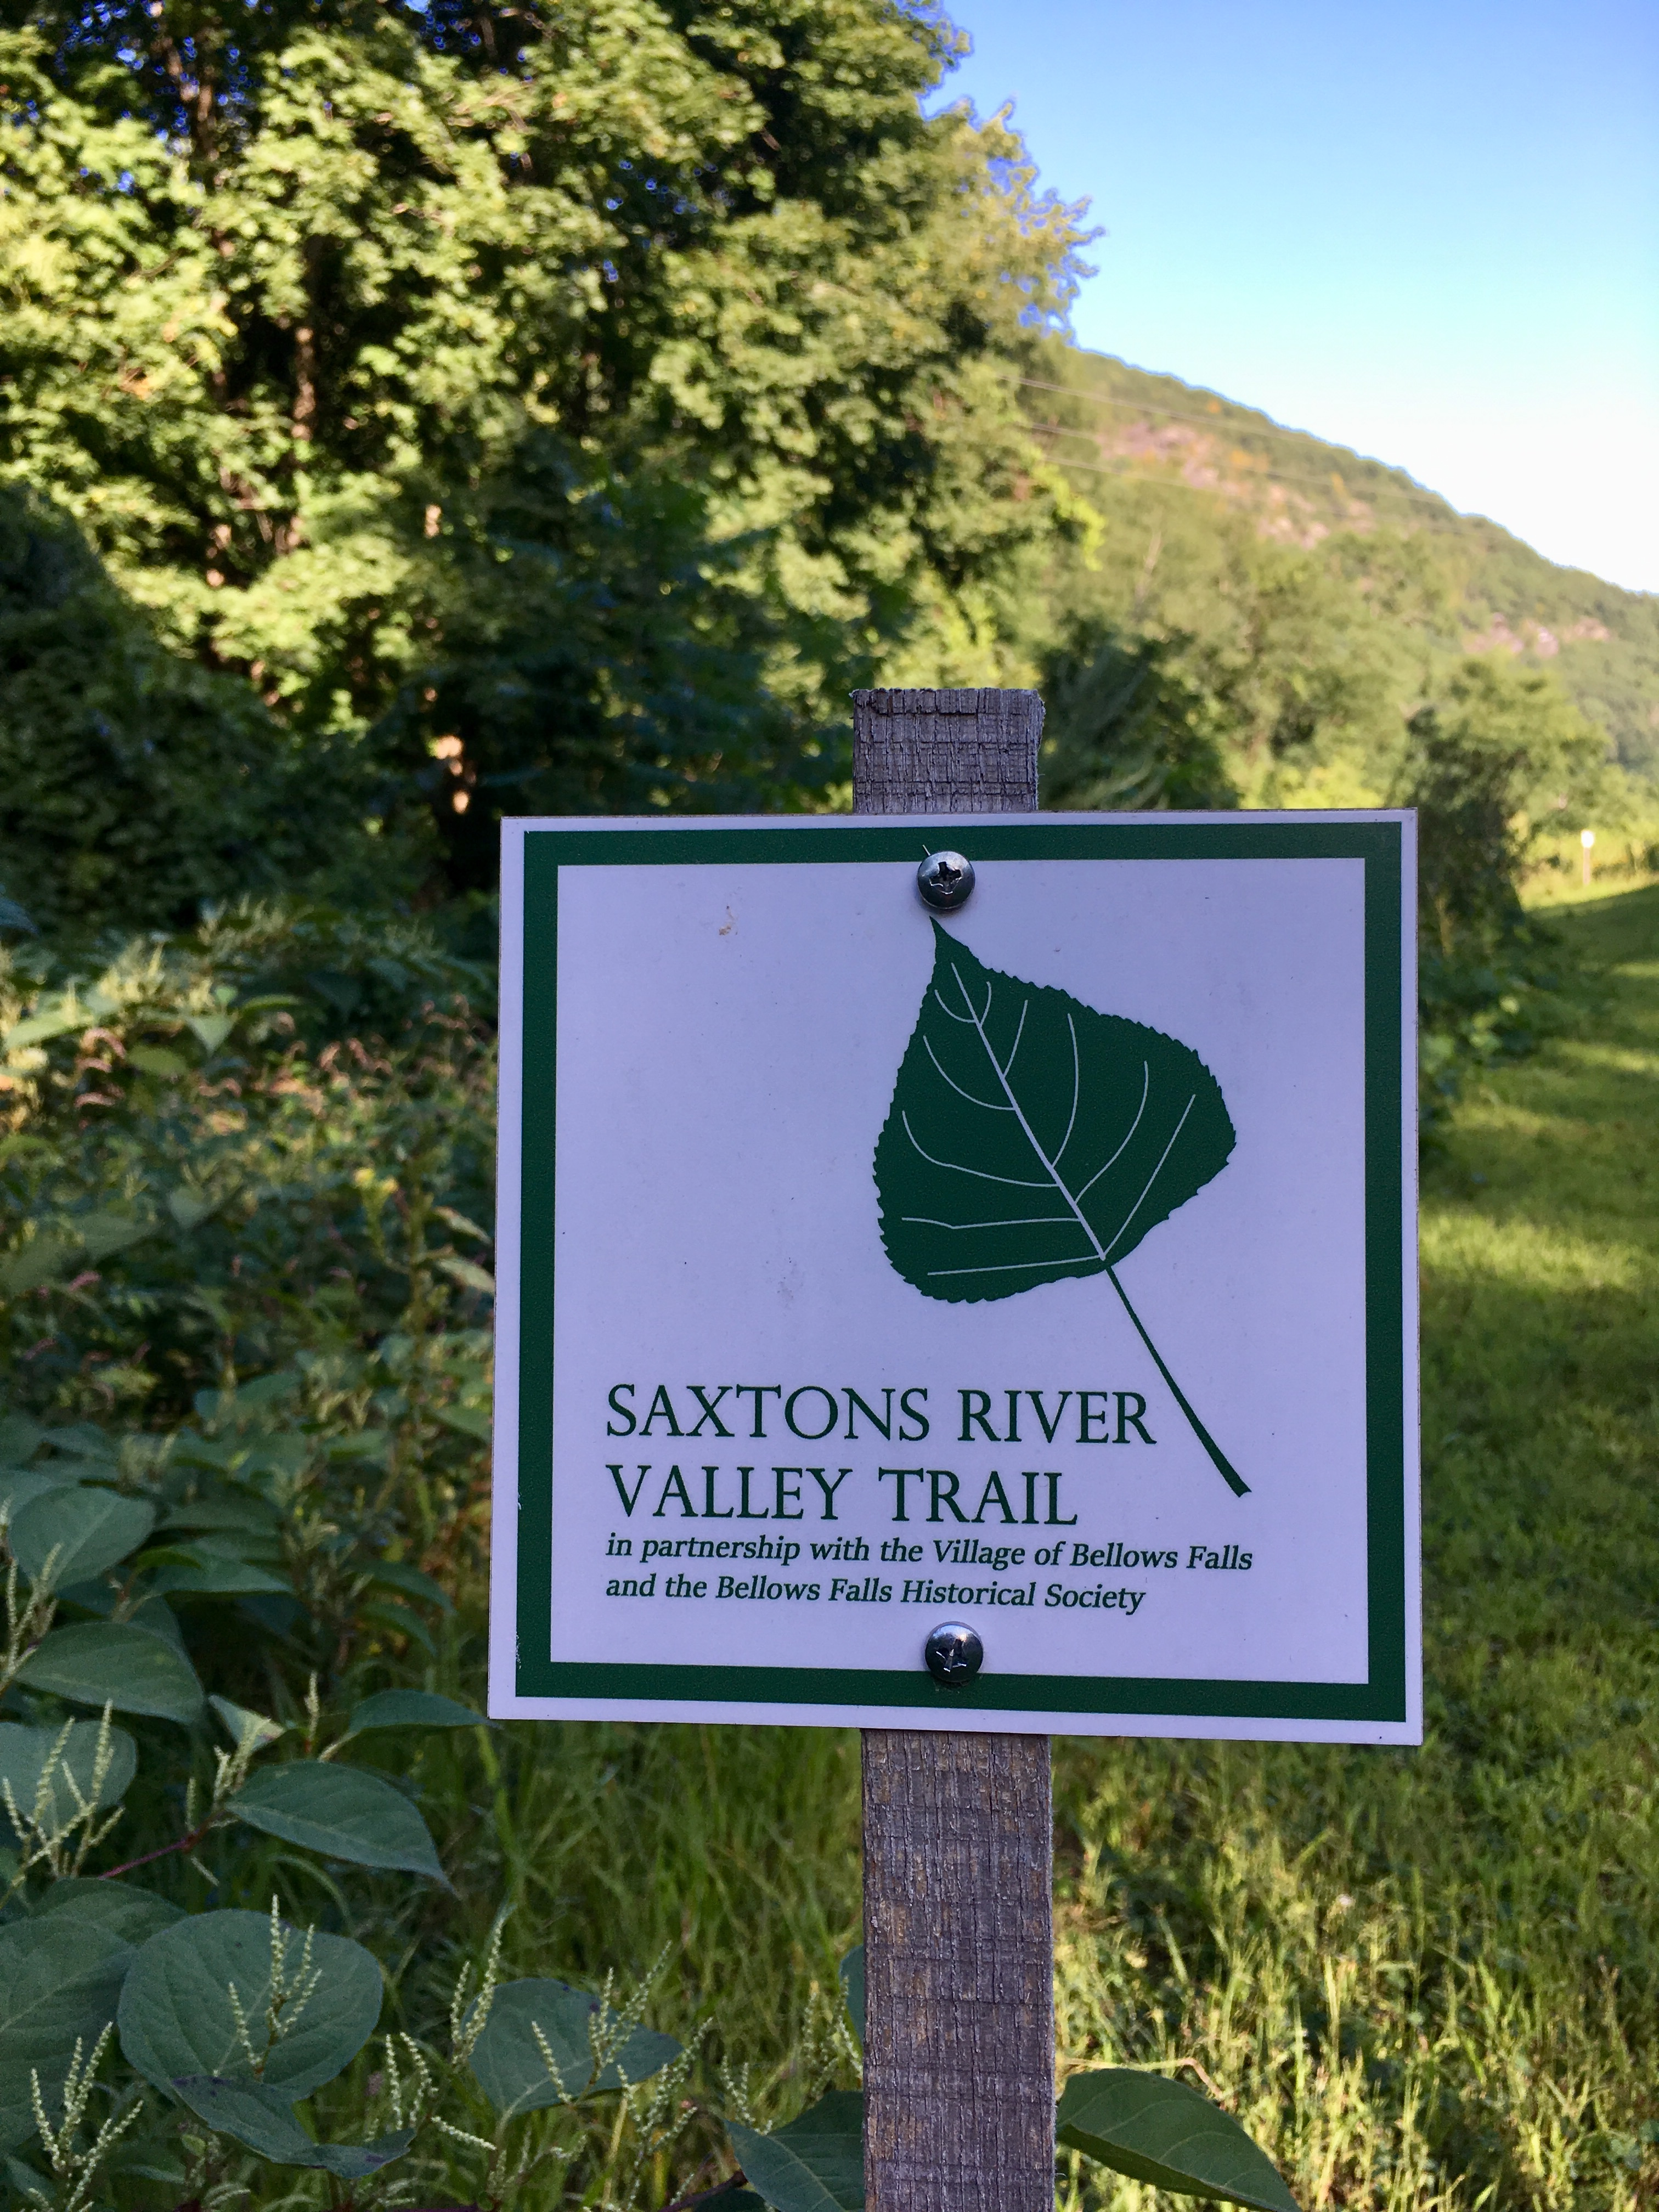 Saxtons River Valley trail sign